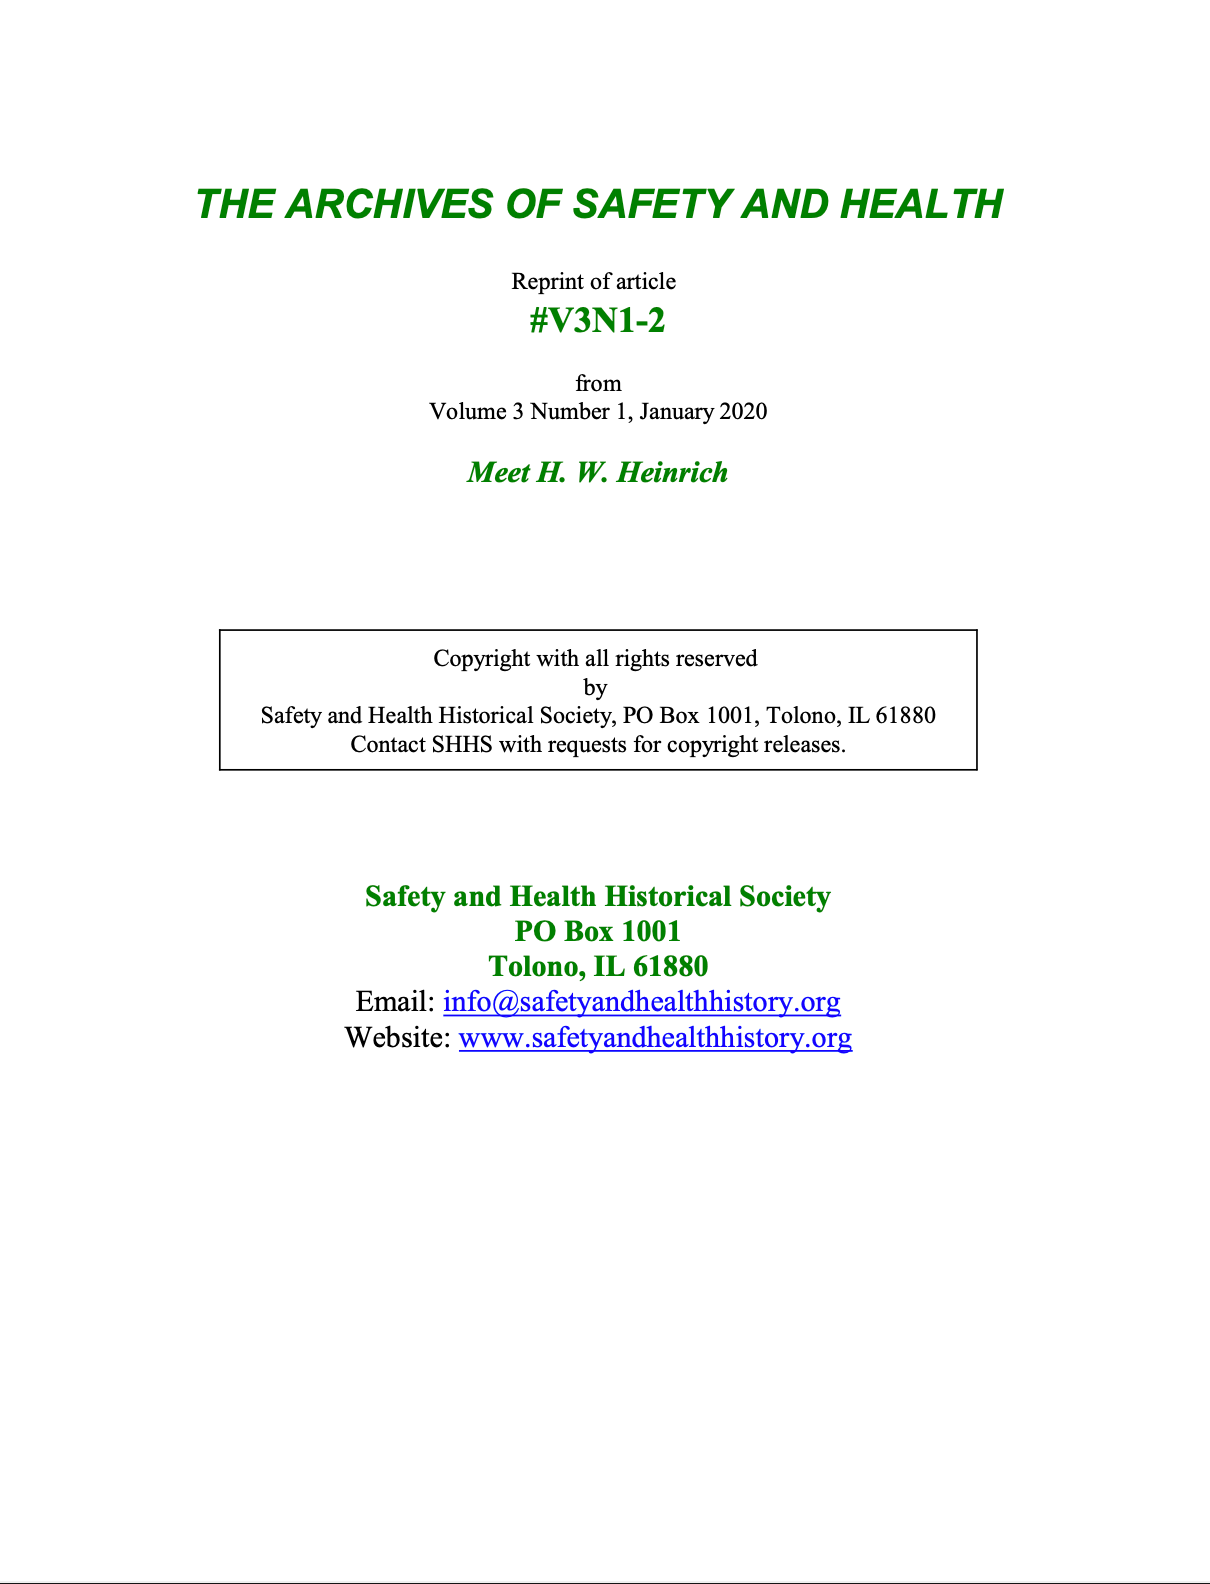 Full Article V3N1-2 of THE ARCHIVES OF SAFETY AND HEALTH - Meet H. W. Heinrich